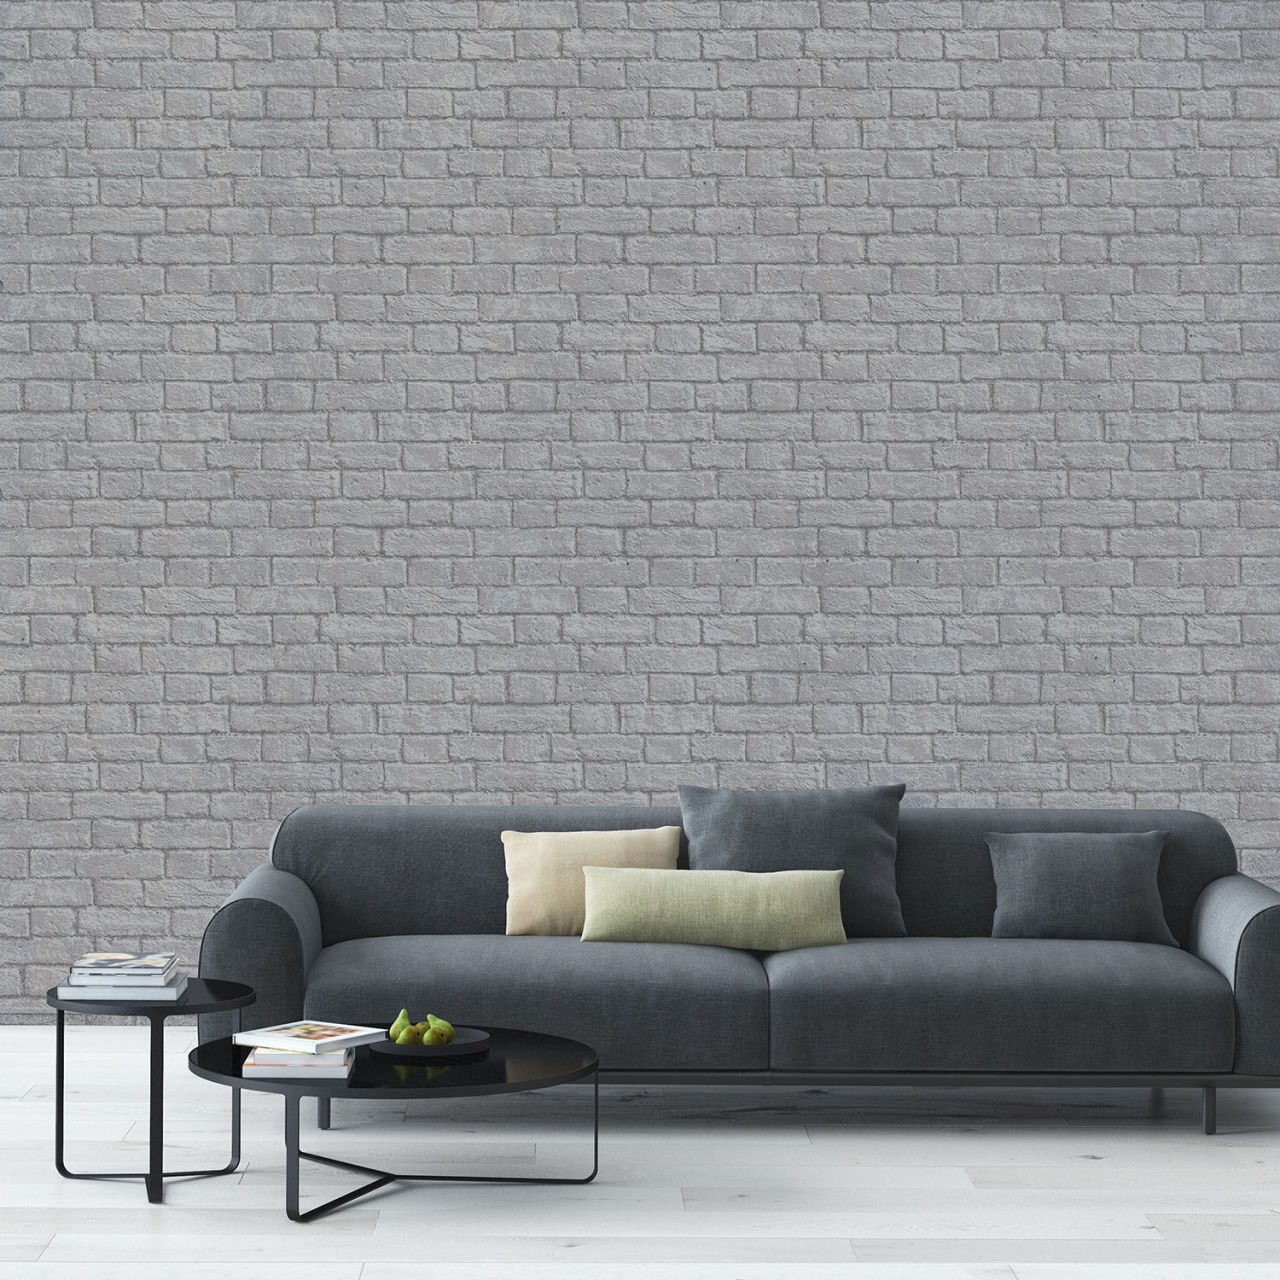 Stylish Brick Effect Wallpaper Designs